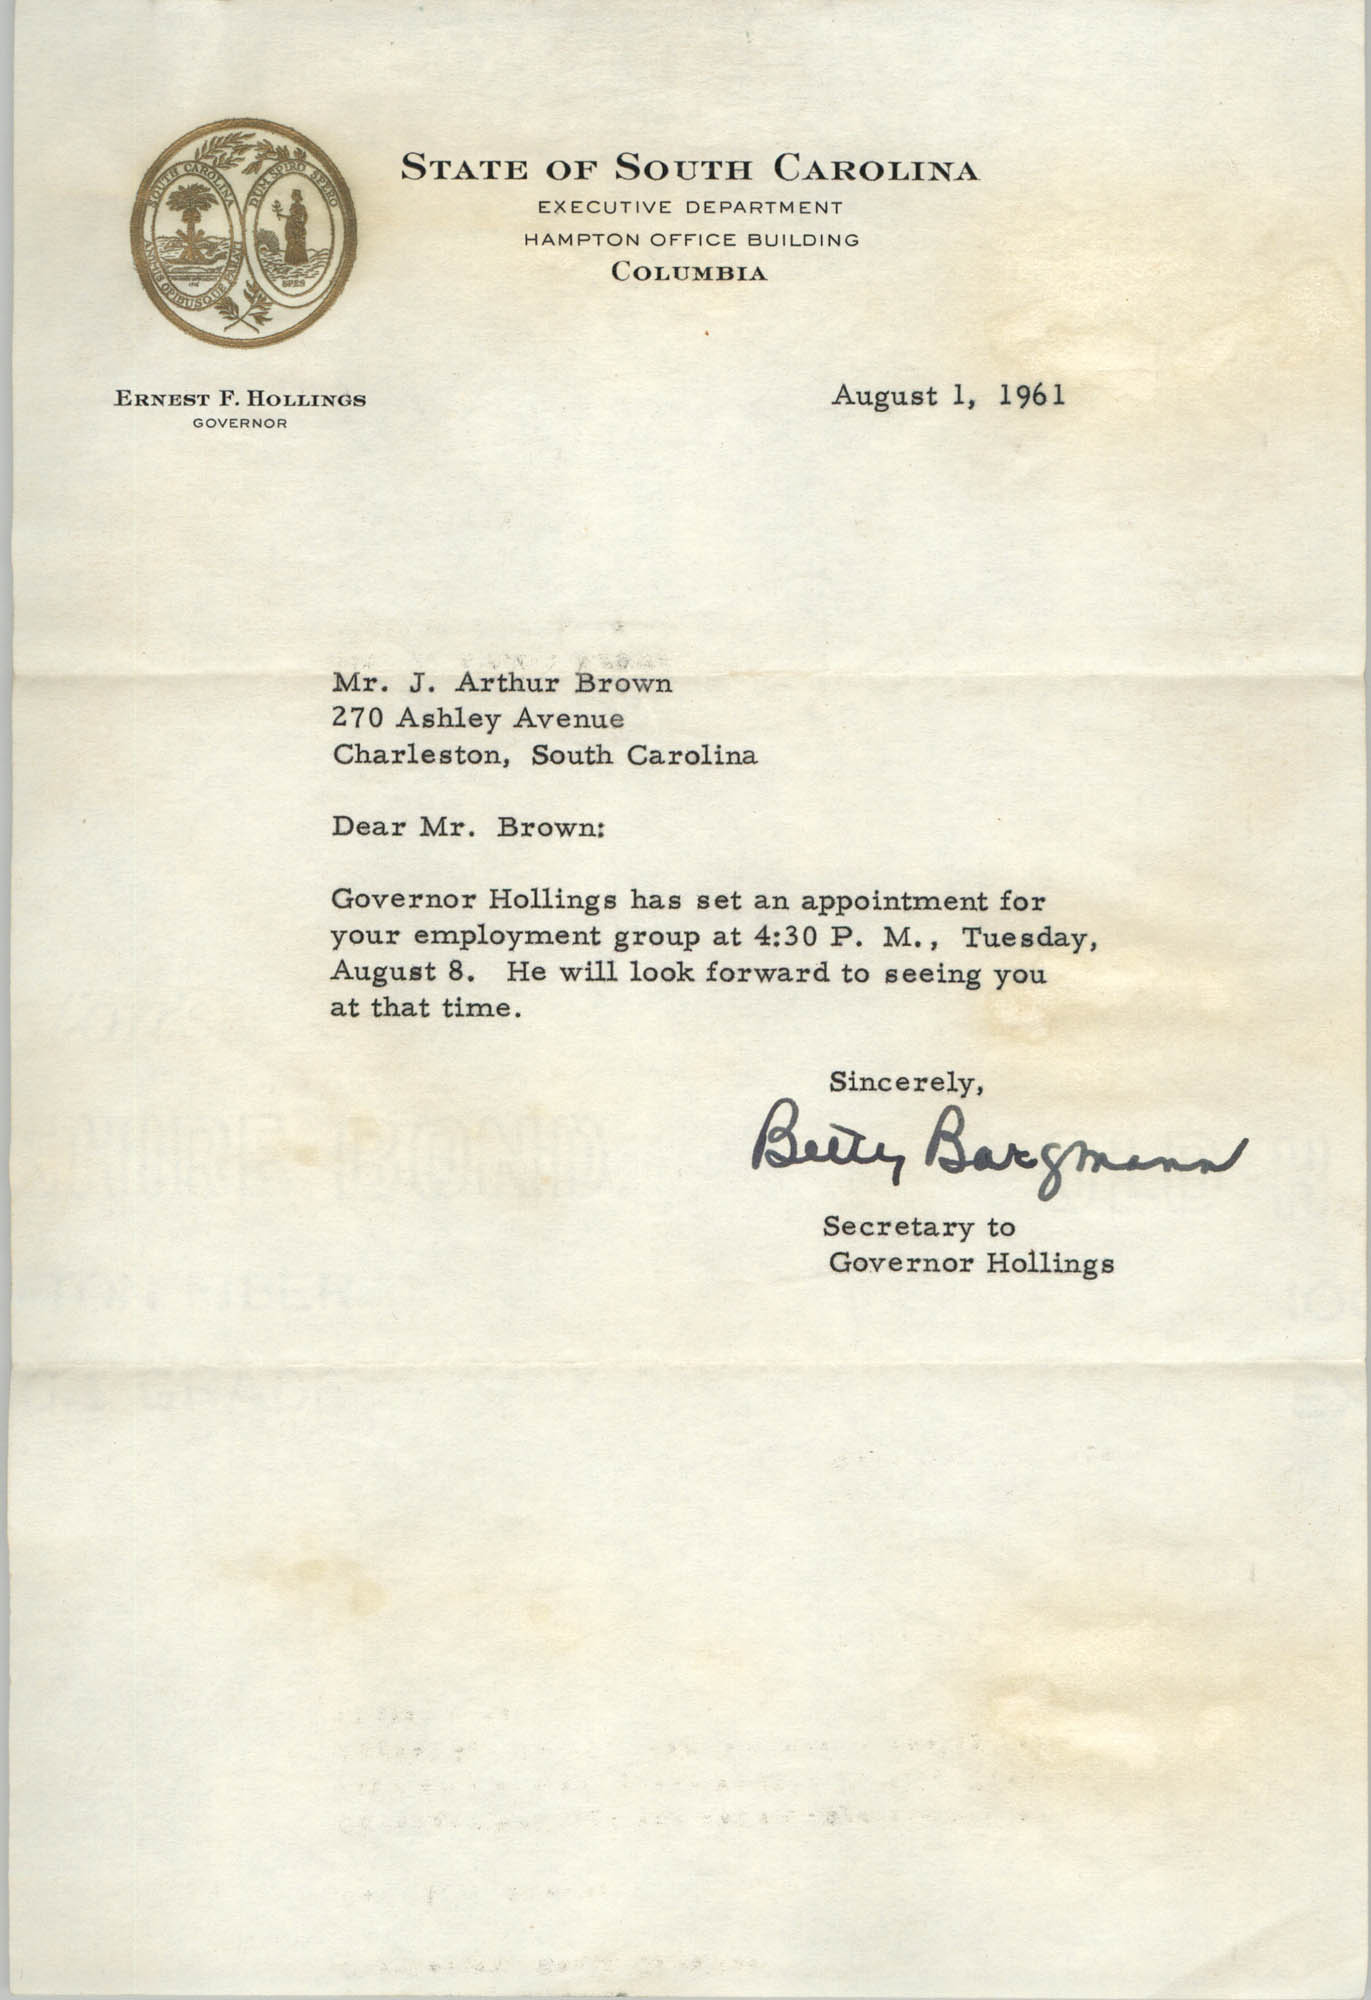 Letter from the Office of Ernest P. Hollings to J. Arthur Brown, August 1, 1961